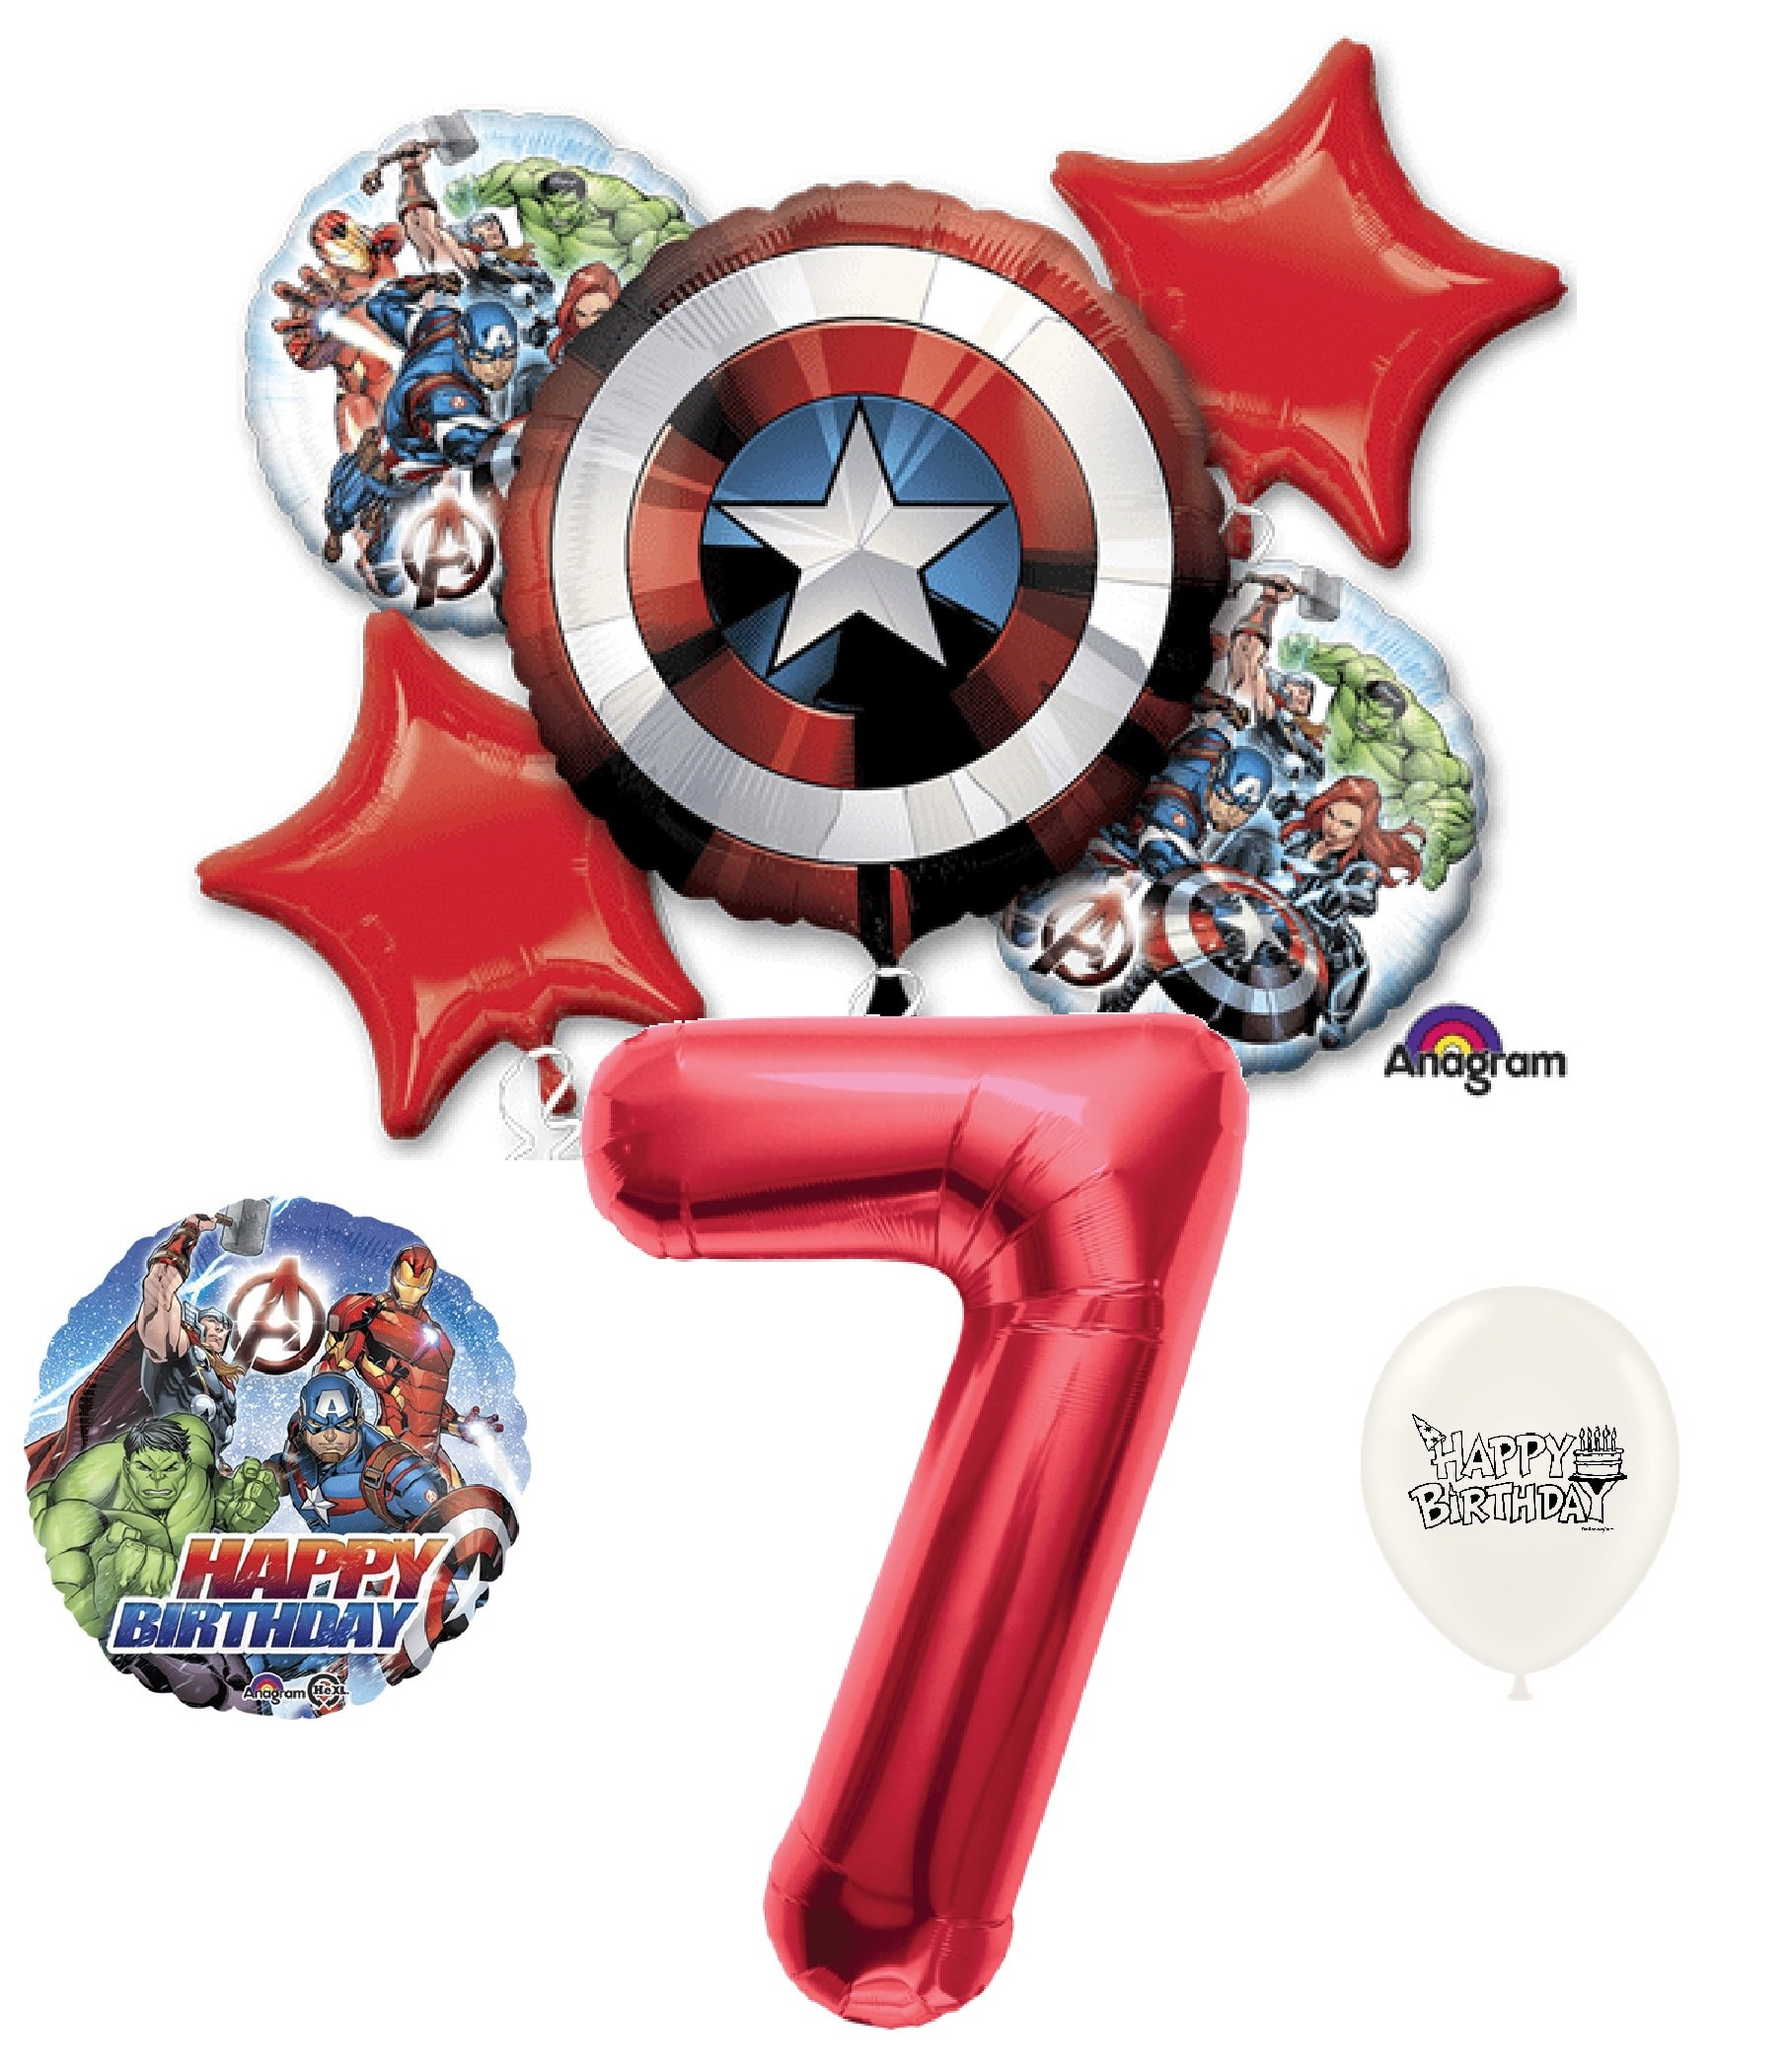 7th Birthday Red Number Avengers Captain America Shield Balloons Bouquet Bundle